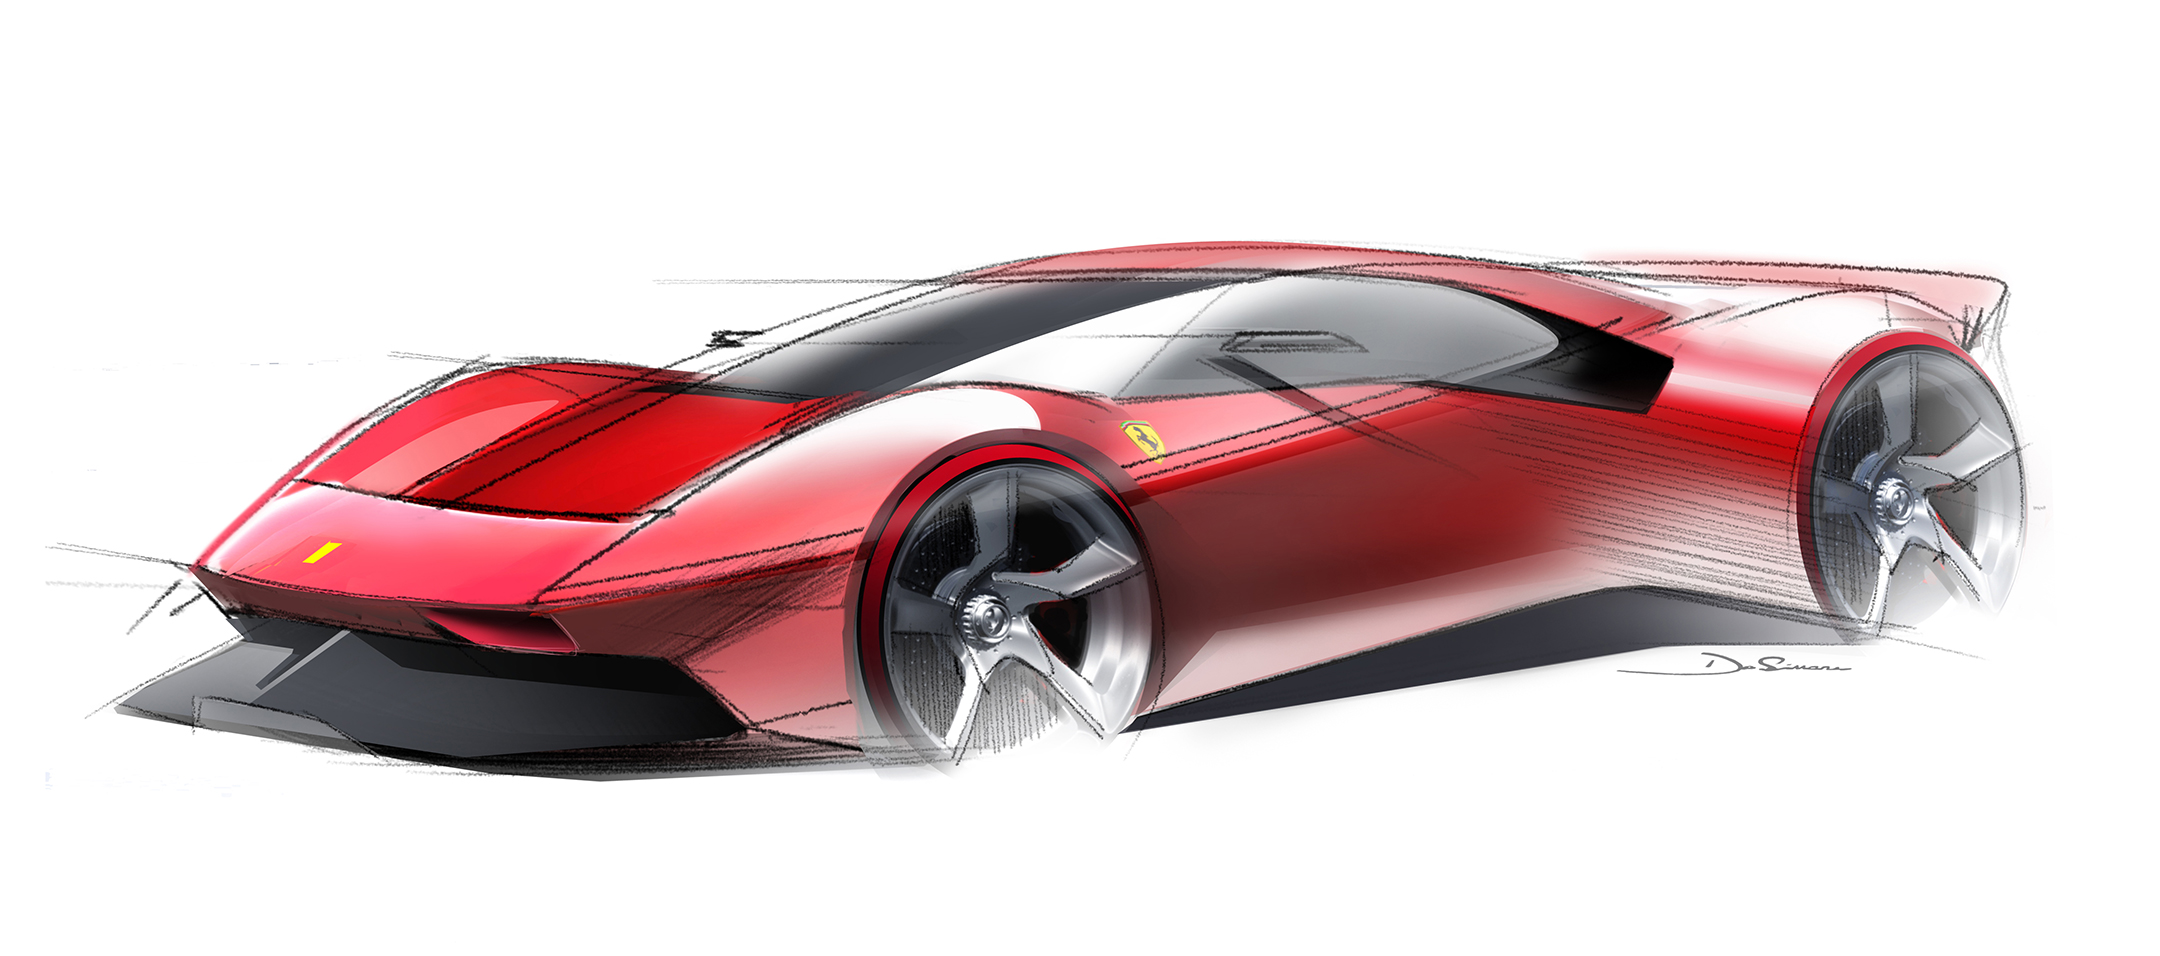 Ferrari P80/C - 2019 - design sketch top - front / avant